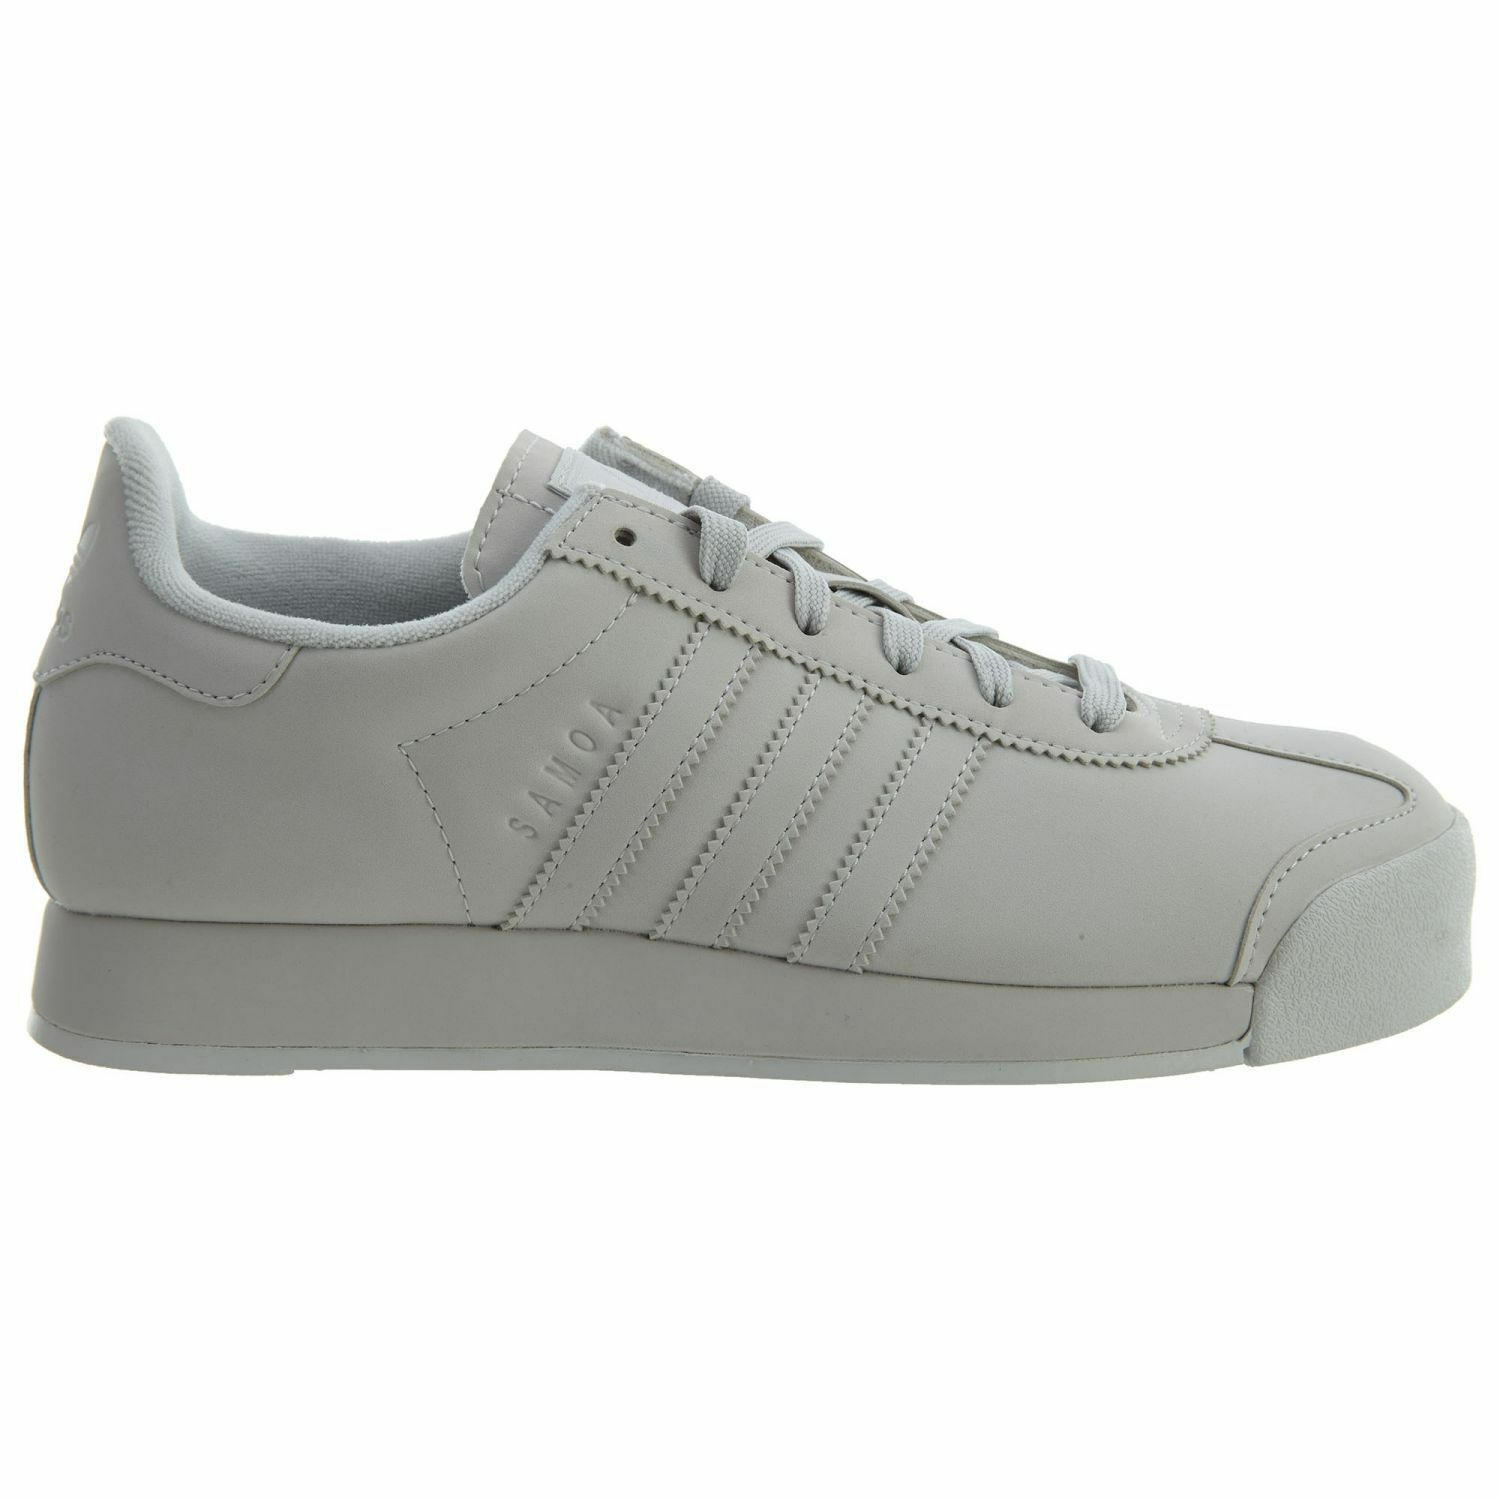 Adidas Samoa Plus Womens BY3527 Grey Faux Suede Athletic Shoes Wmns Comfortable